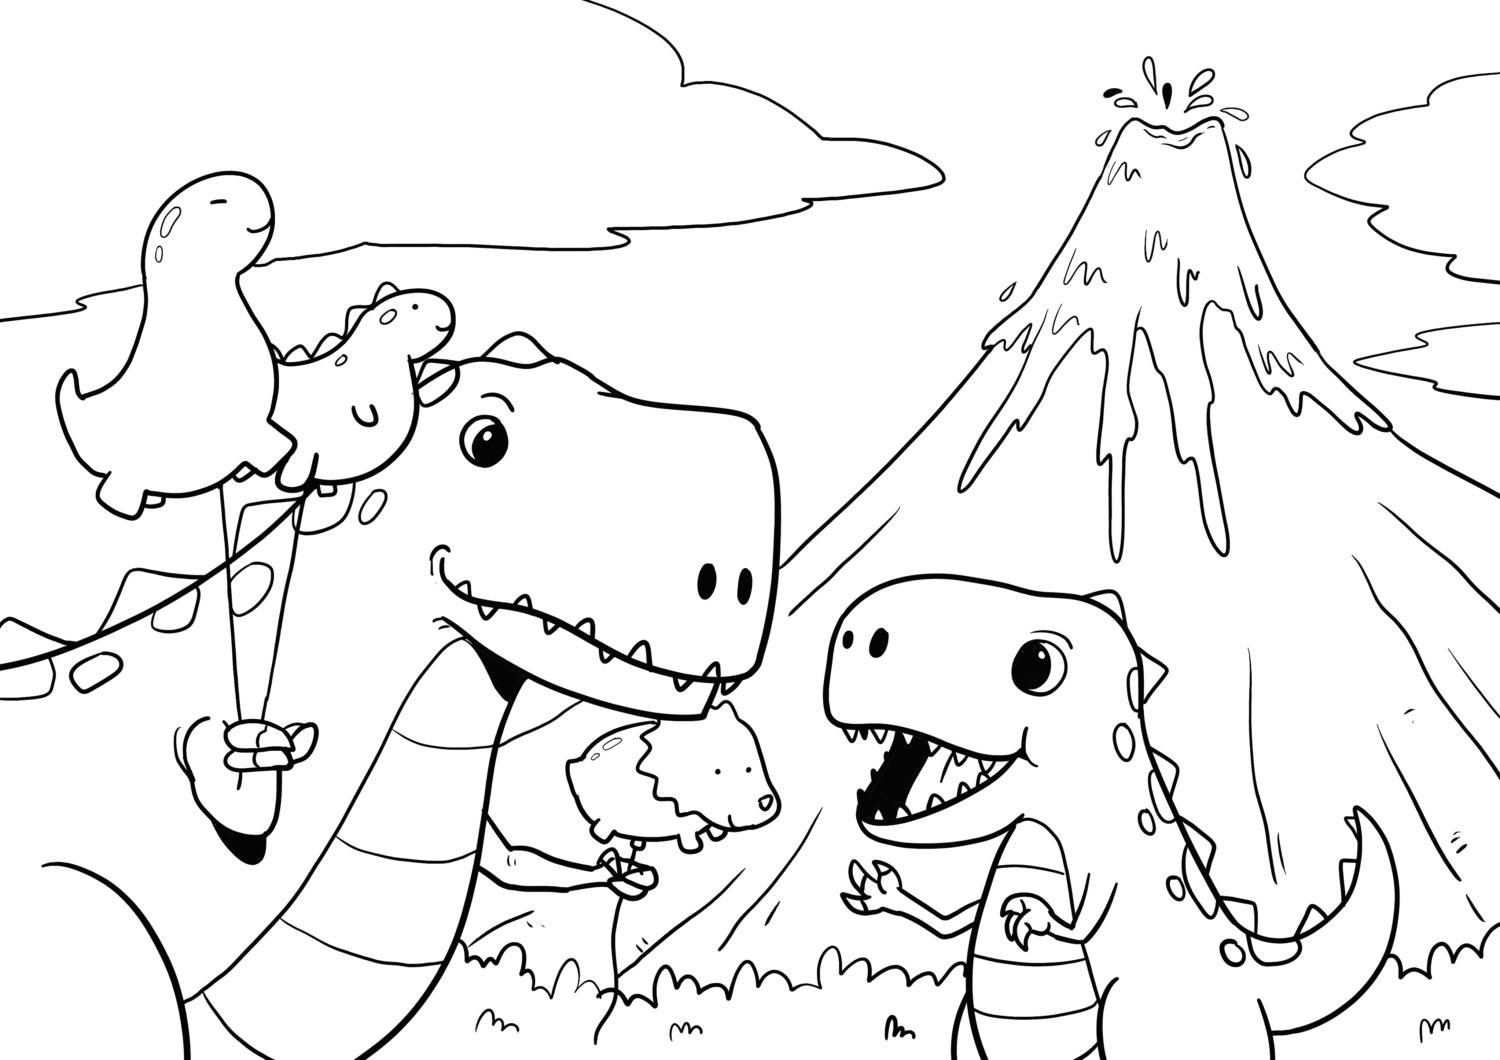 coloring dinosaurs t rex trex coloring pages best coloring pages for kids coloring t rex dinosaurs